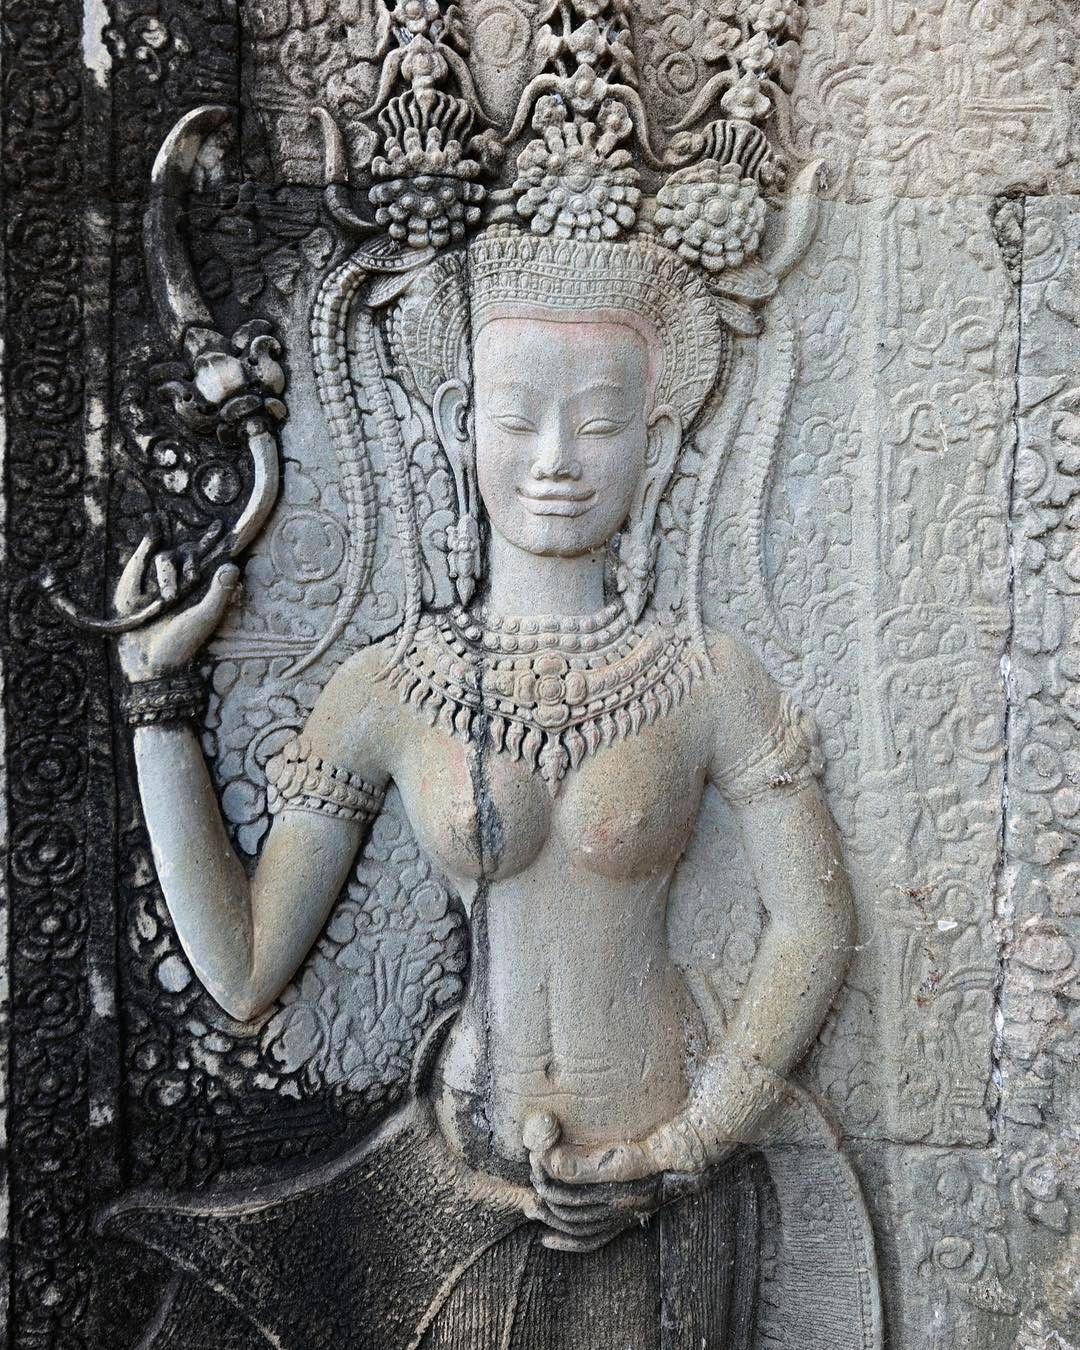 Tracking Apsaras and Devatas in the #Angkor Temples, #Cambodia © Travel with Mei & Kerstin www.travelwithmk.com